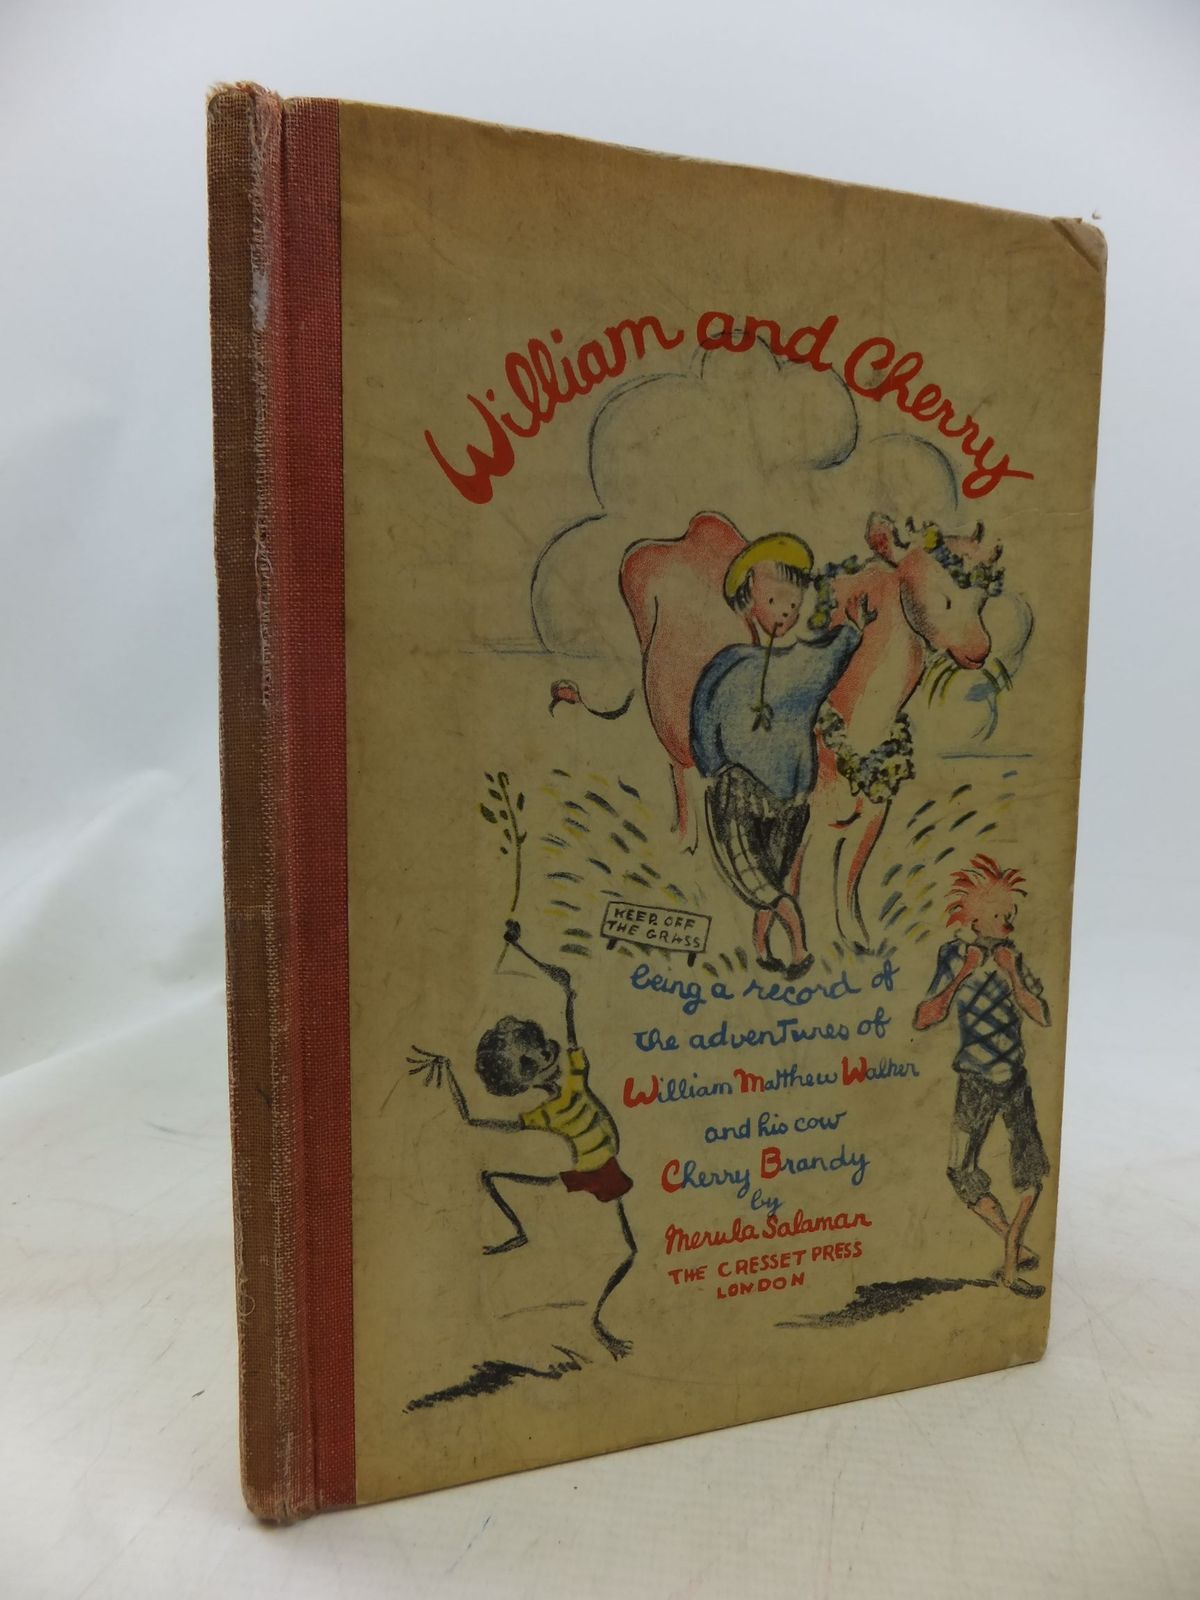 Photo of WILLIAM AND CHERRY written by Salaman, Merula illustrated by Salaman, Merula published by The Cresset Press (STOCK CODE: 1711375)  for sale by Stella & Rose's Books